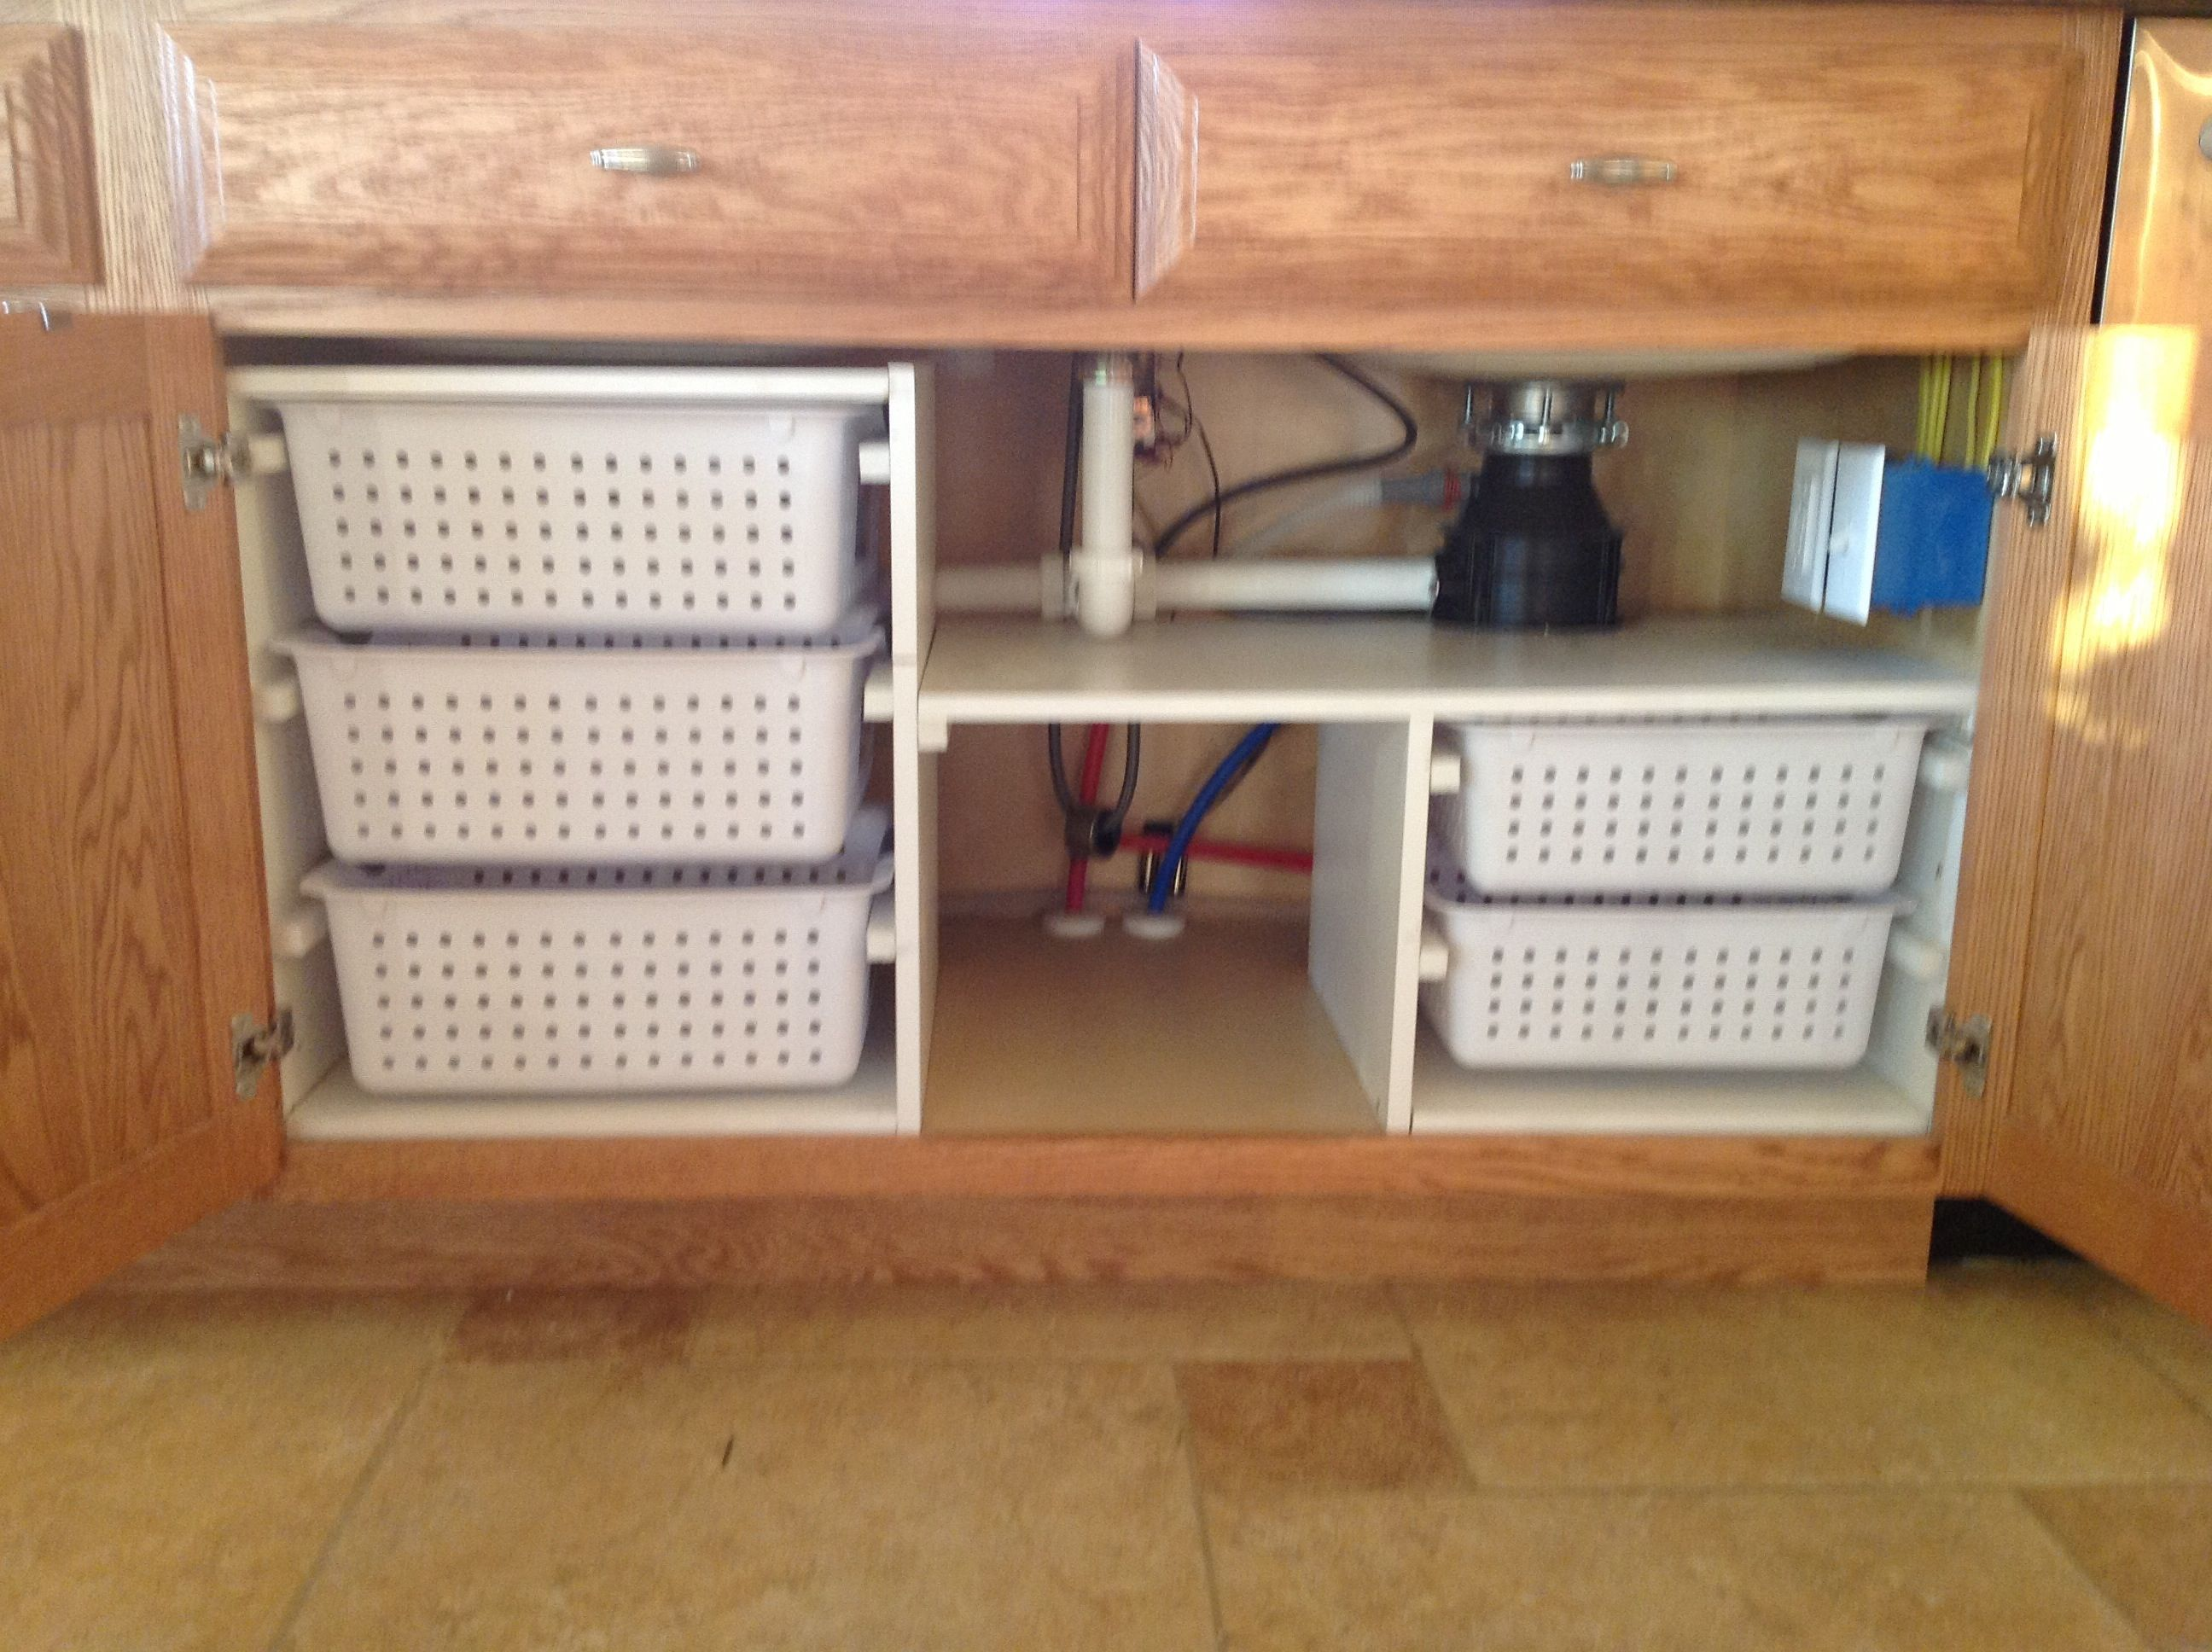 charming Kitchen Under Sink Organizer #8: Under kitchen sink organization my husband built.